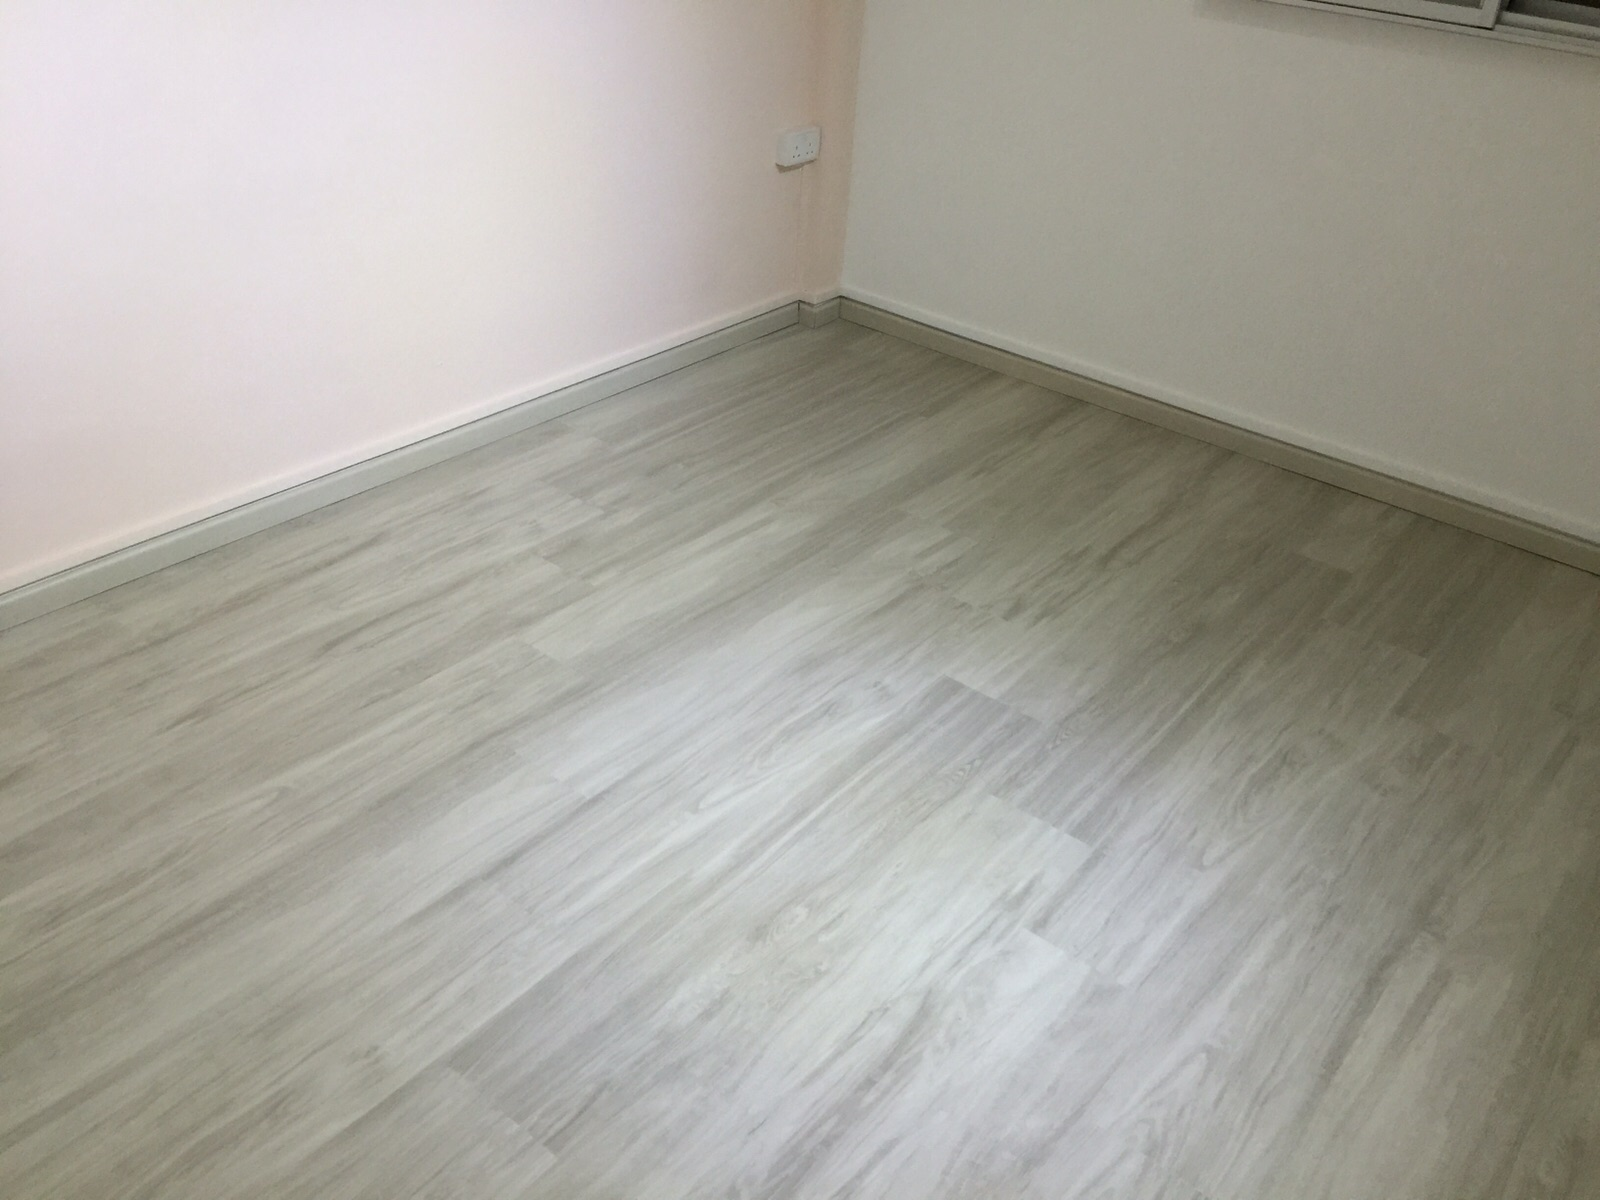 laminate flooring singapore laminate flooring reviews singapore designs UZRGPYJ